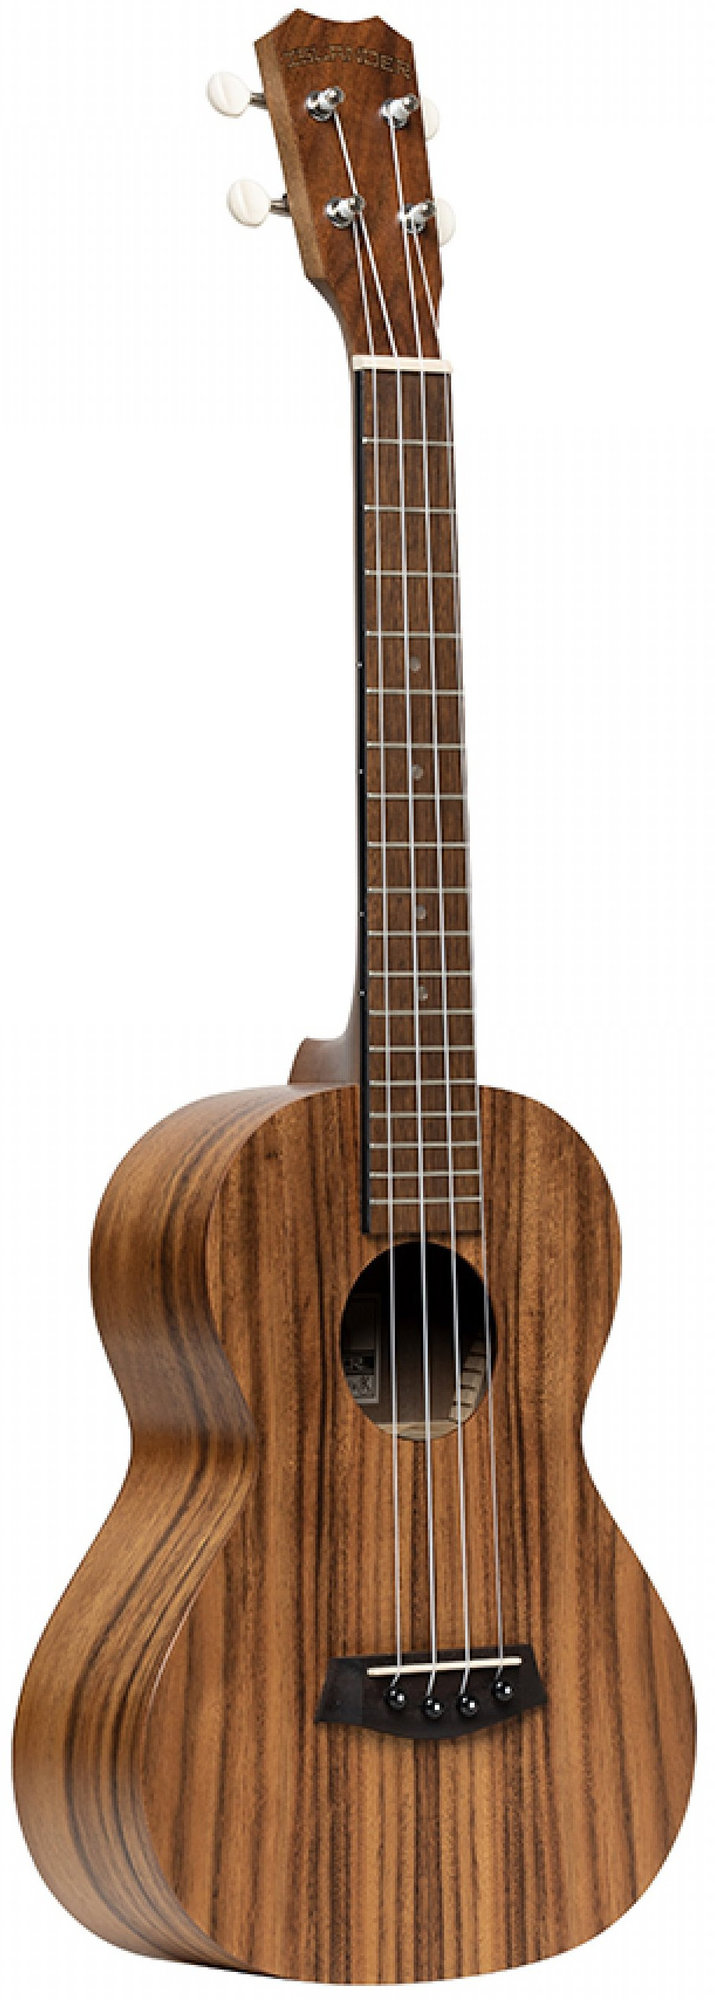 Islander Ukulele AT-4 / Tenor Ukulele (natural)